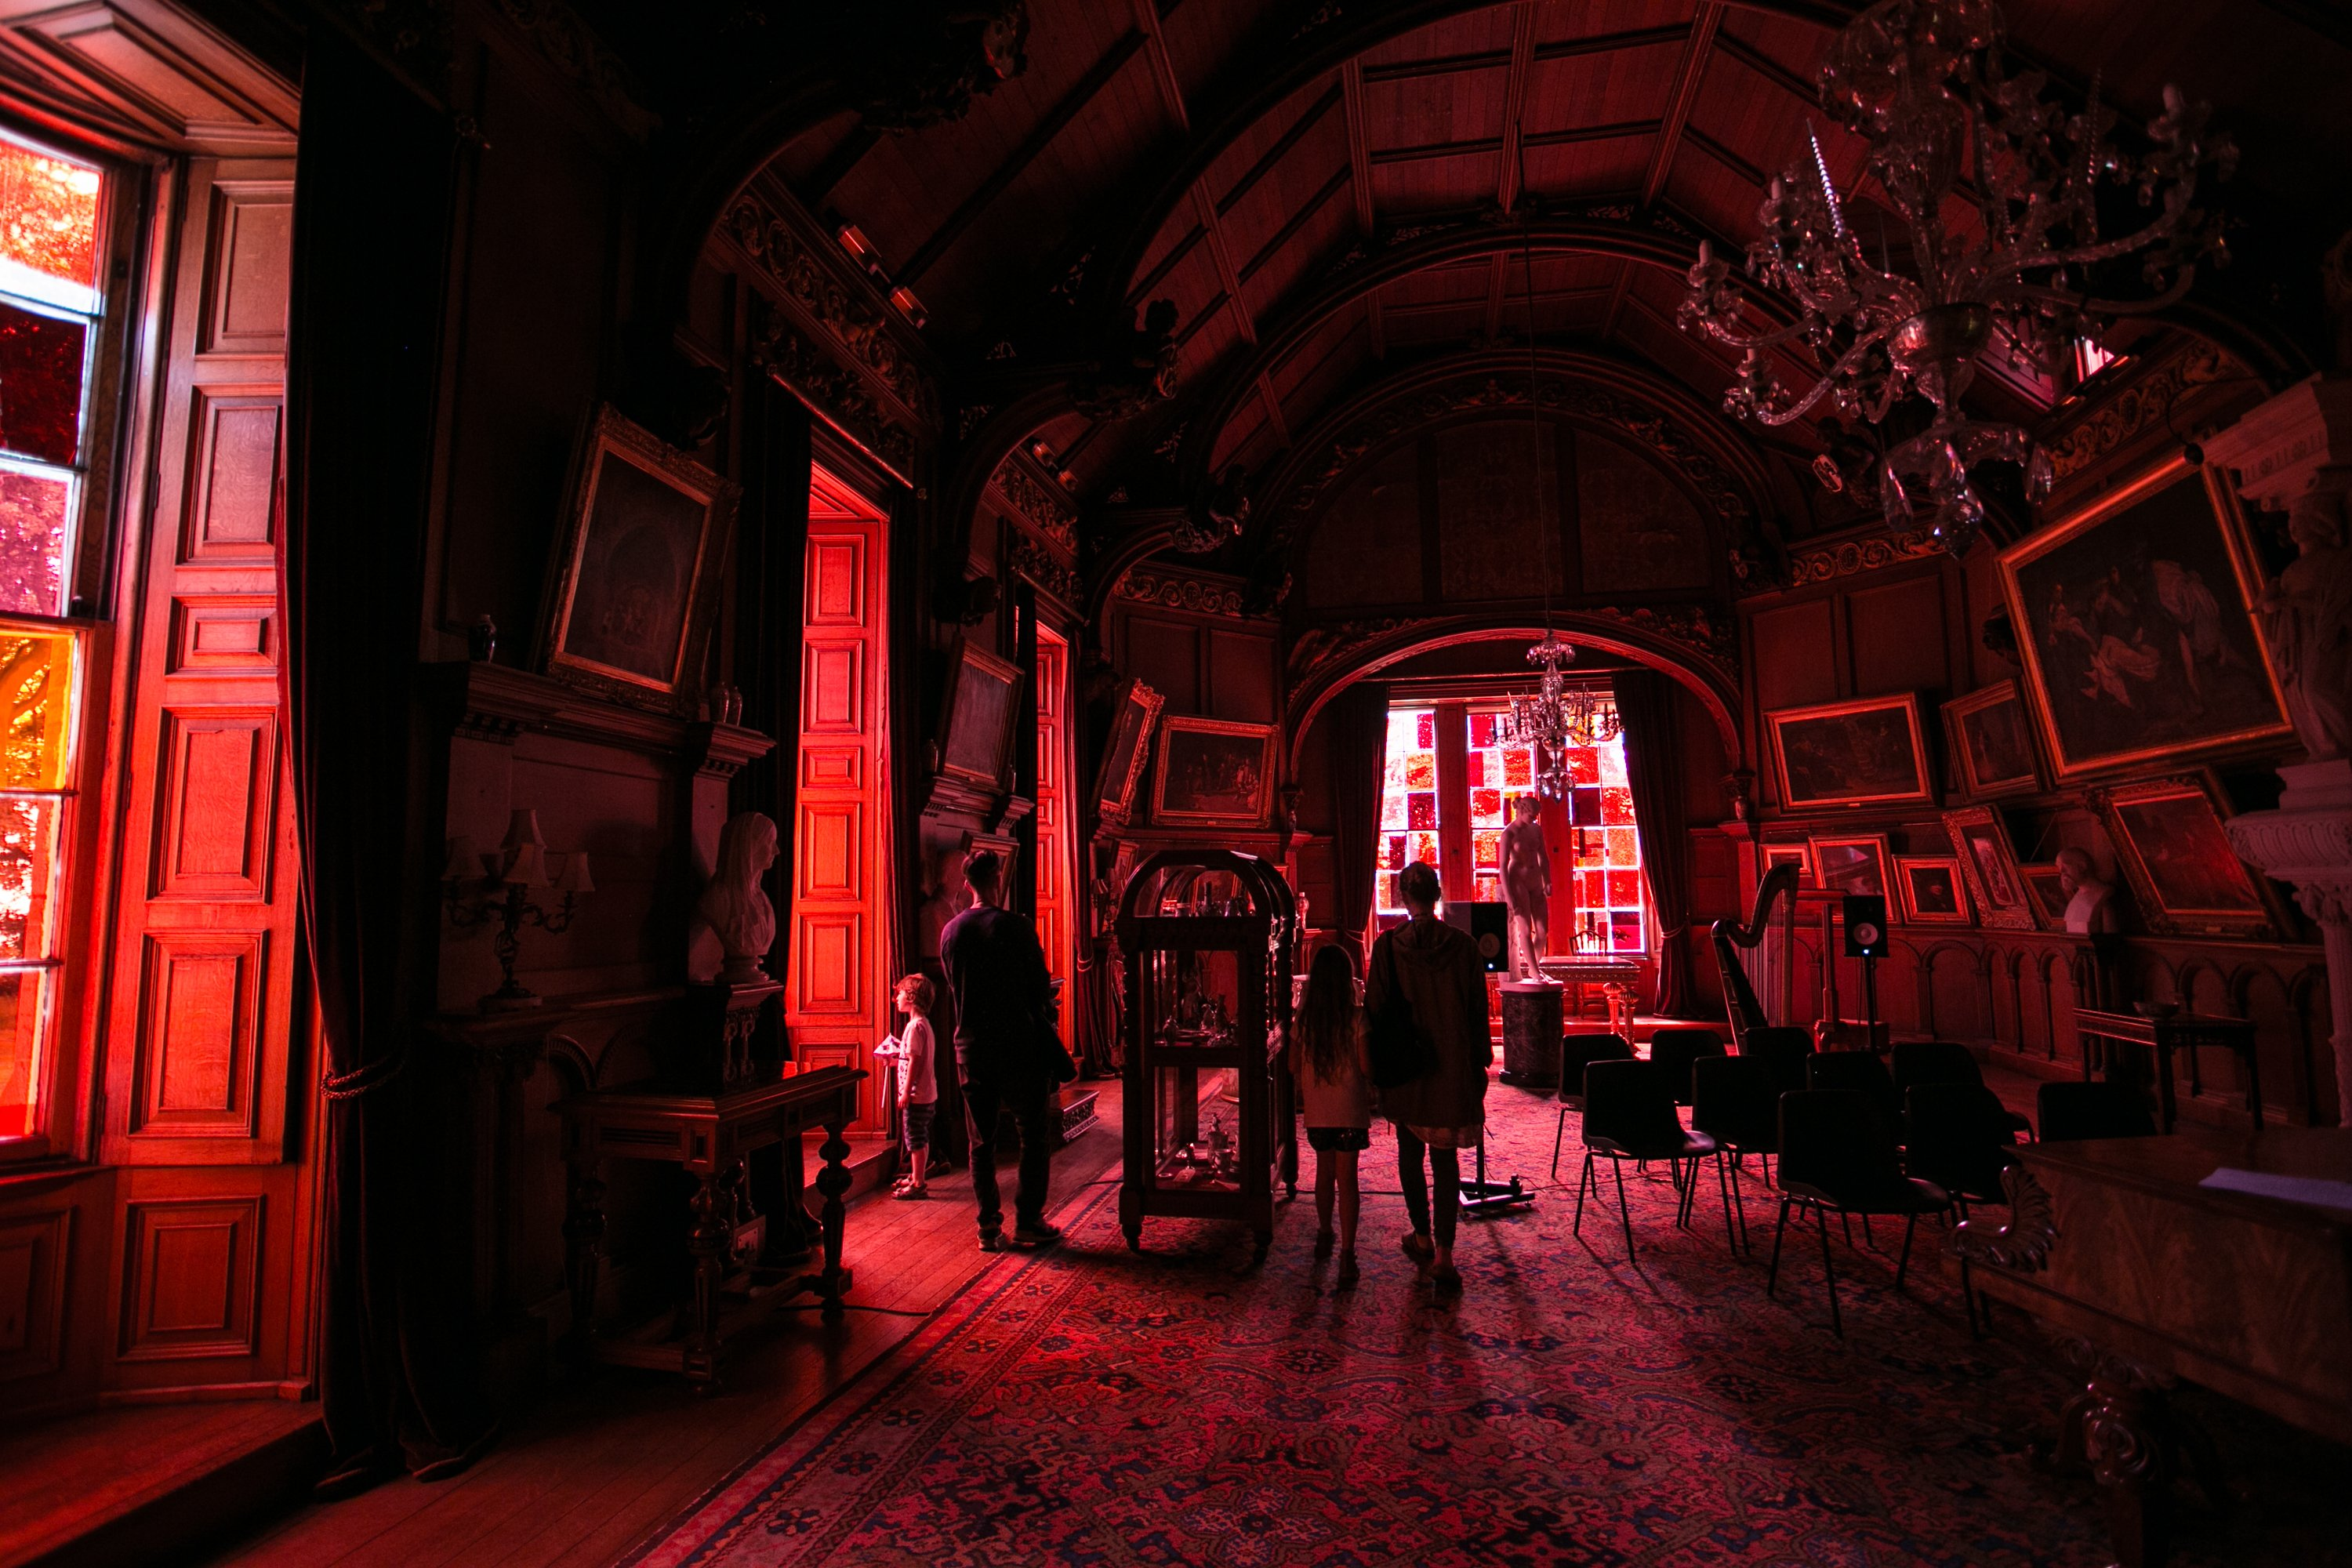 Visitors-Hospitalfield-JUN19-erikastevenson-10